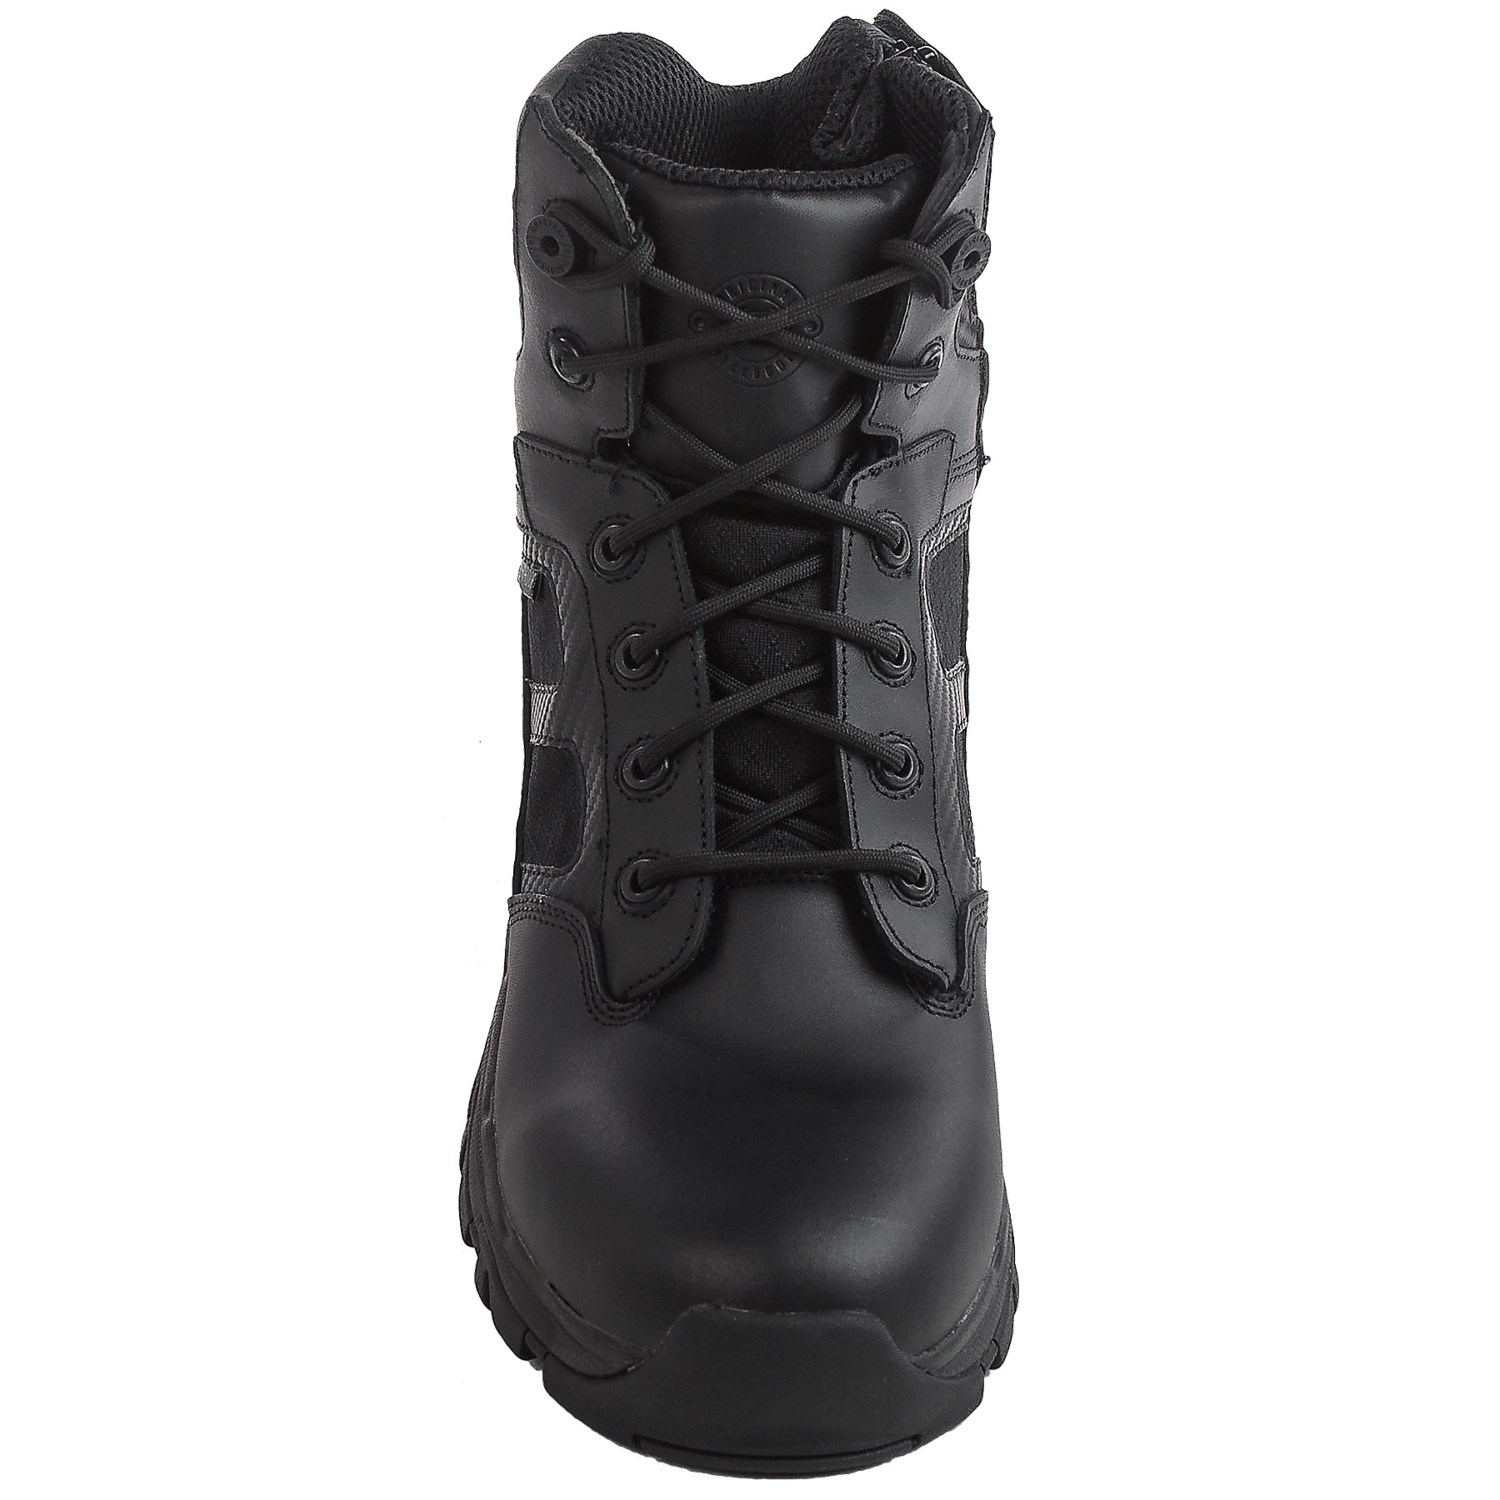 Justin leather work gloves - Justin Boots Steam Eh Work Boots Waterproof Leather Composite Toe For Men